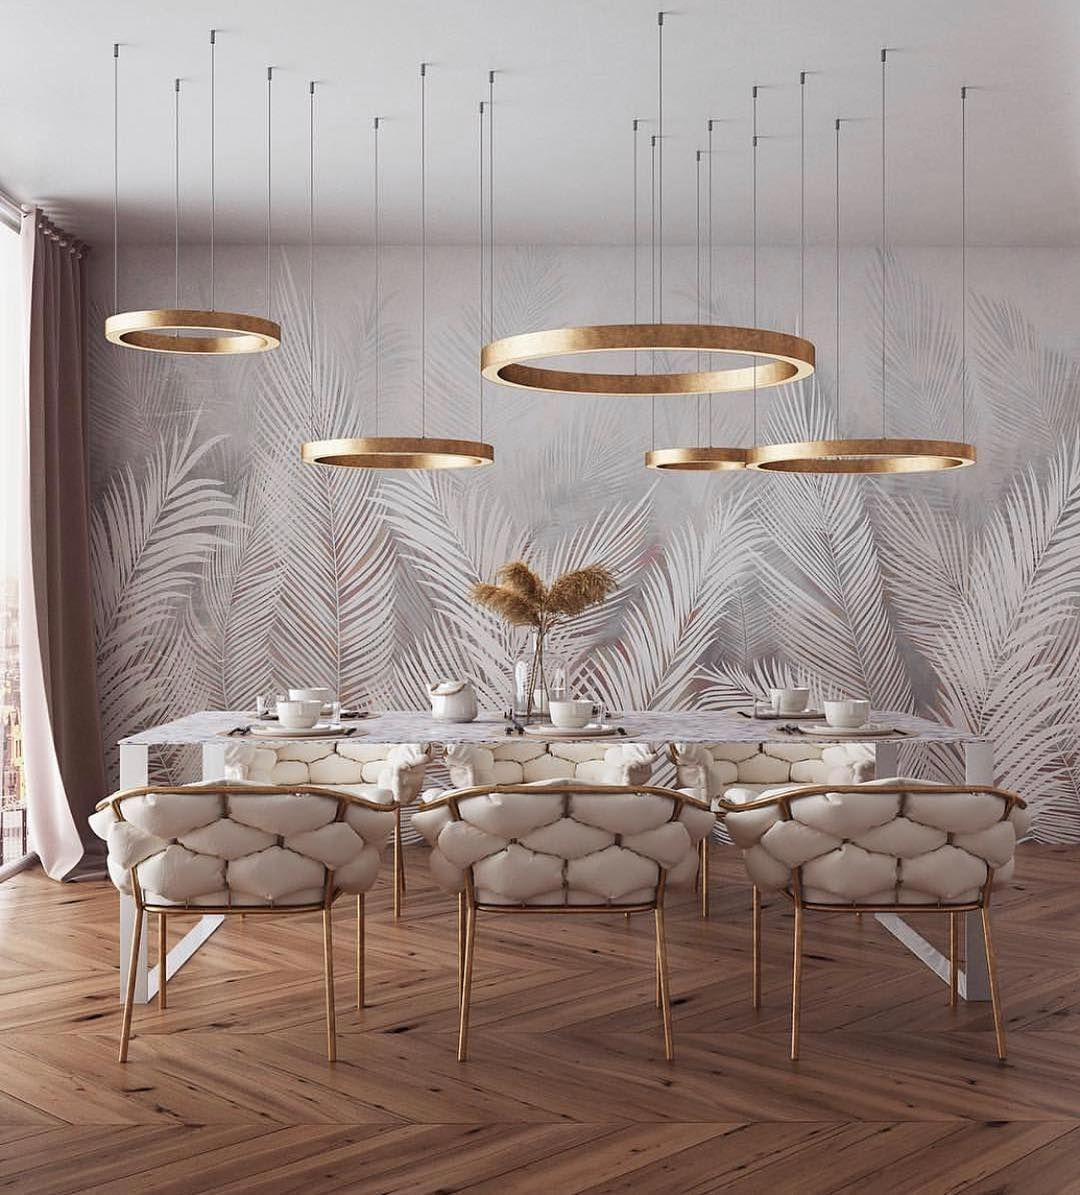 30 Incredible Dining Room Design Ideas